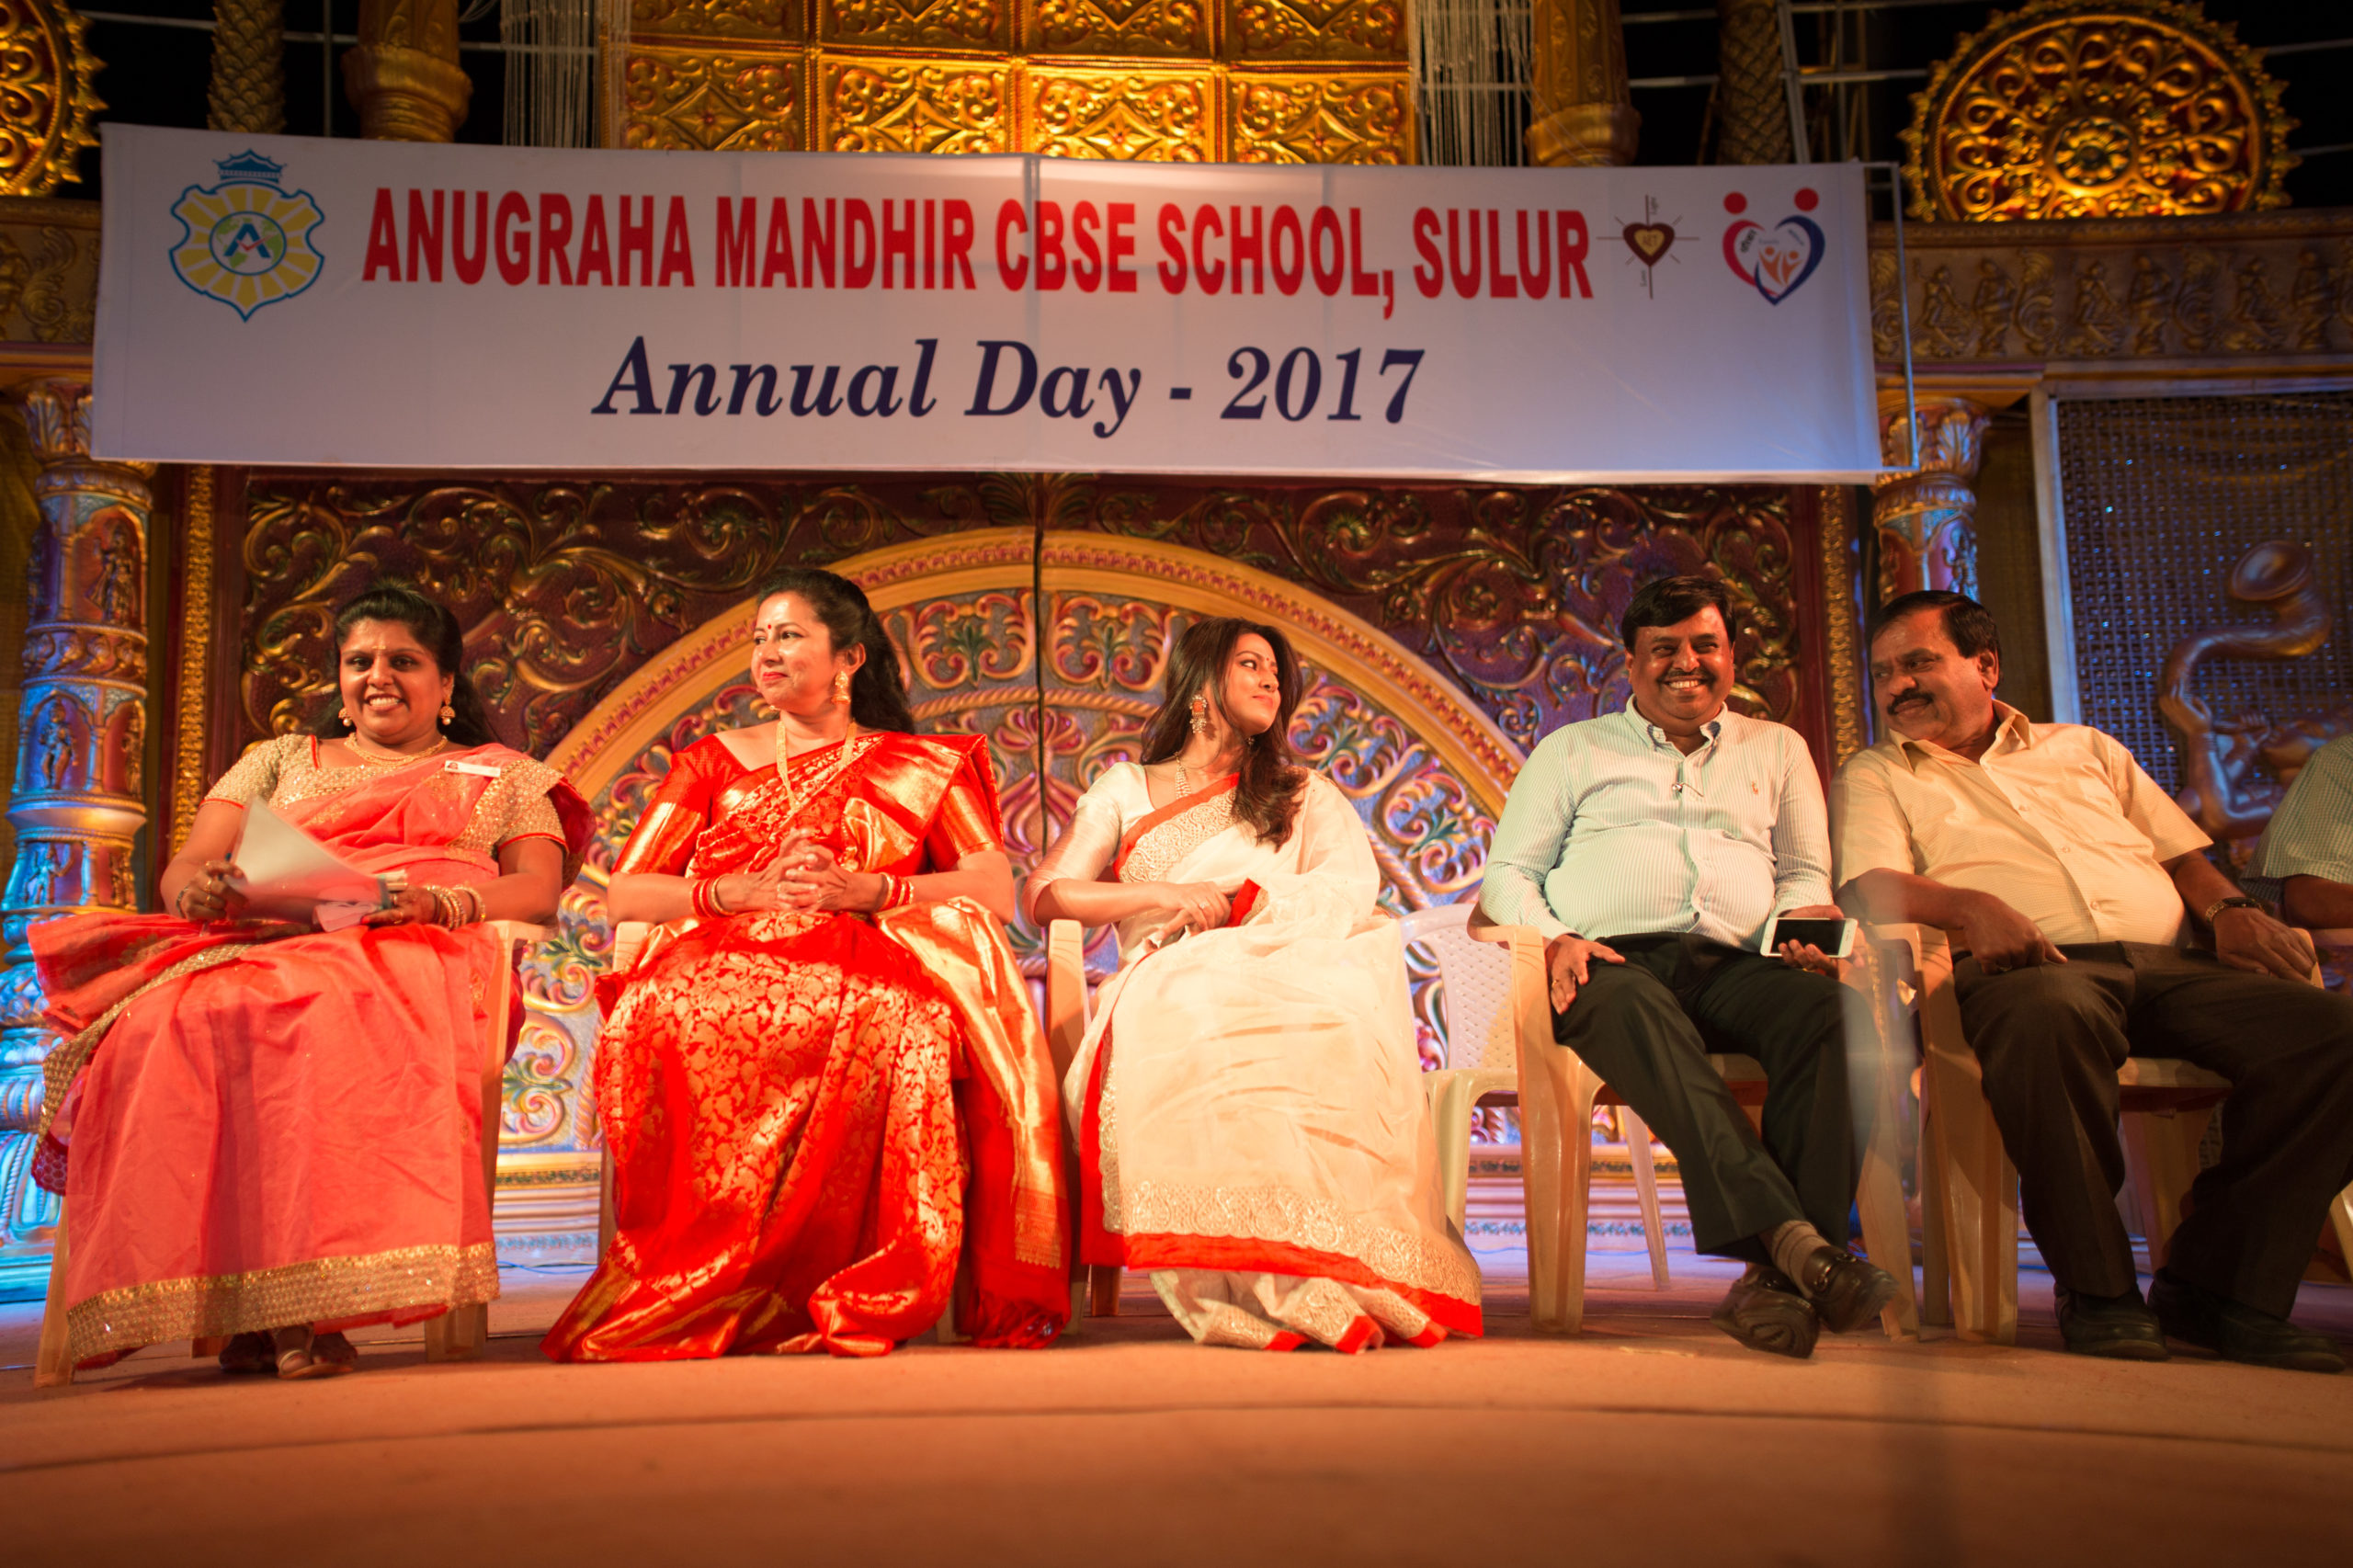 Annual Day – 2017